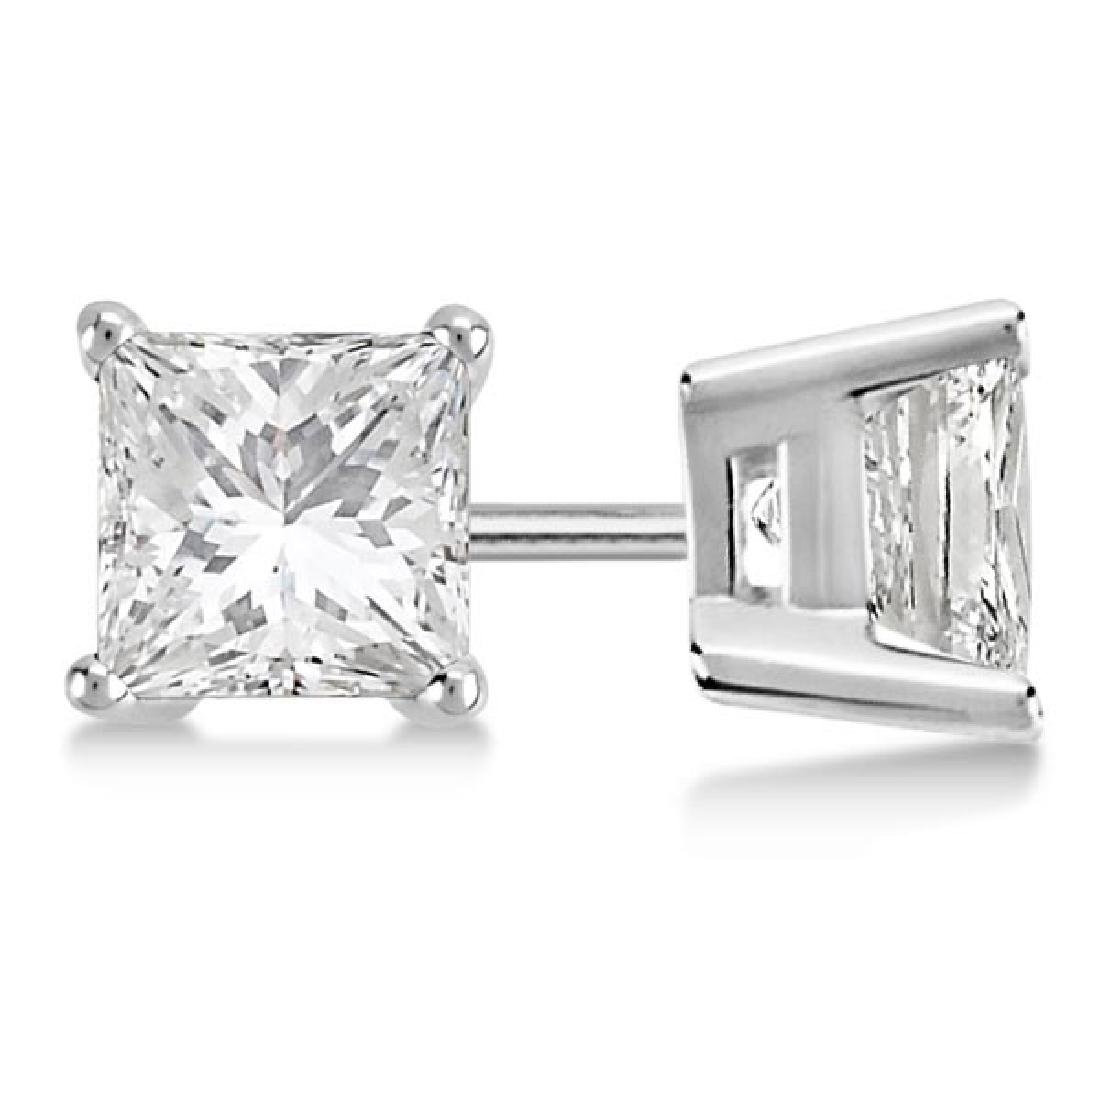 Certified 1.06 CTW Princess Diamond Stud Earrings D/SI2